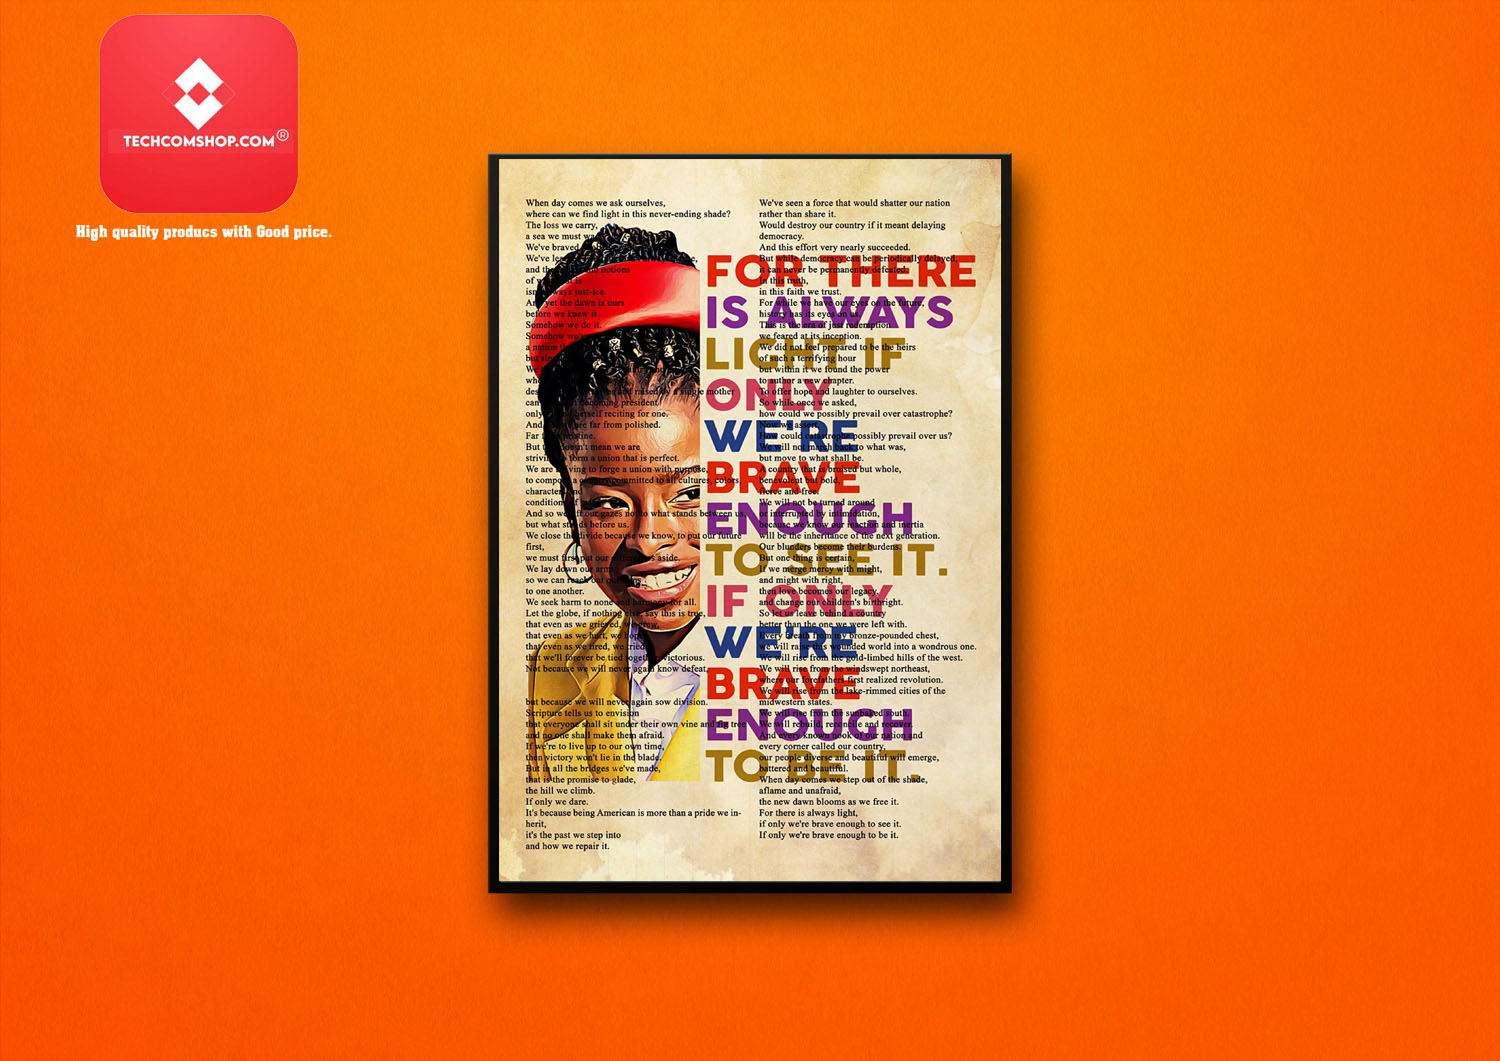 Amanda Gorman for there is always light if only we're brave enough to see it poster 8